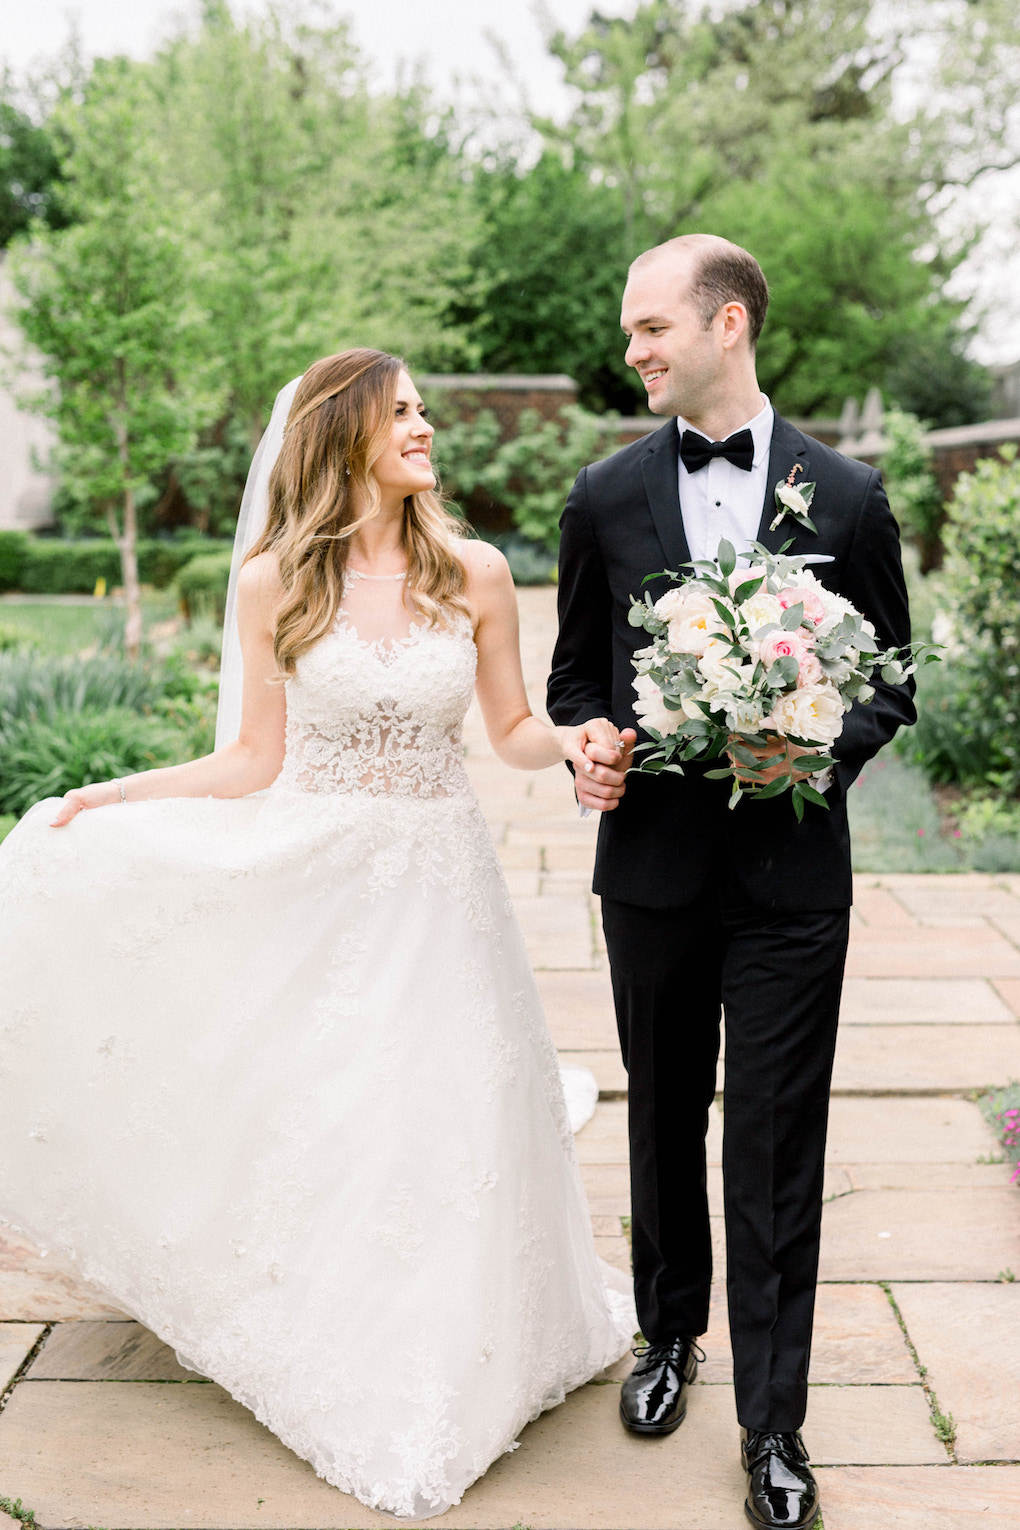 Bride and groom outdoor wedding photos: Romantic Fairytale Omni William Penn Wedding in Pittsburgh, PA planned by Exhale Events. Find more wedding inspiration at exhale-events.com!